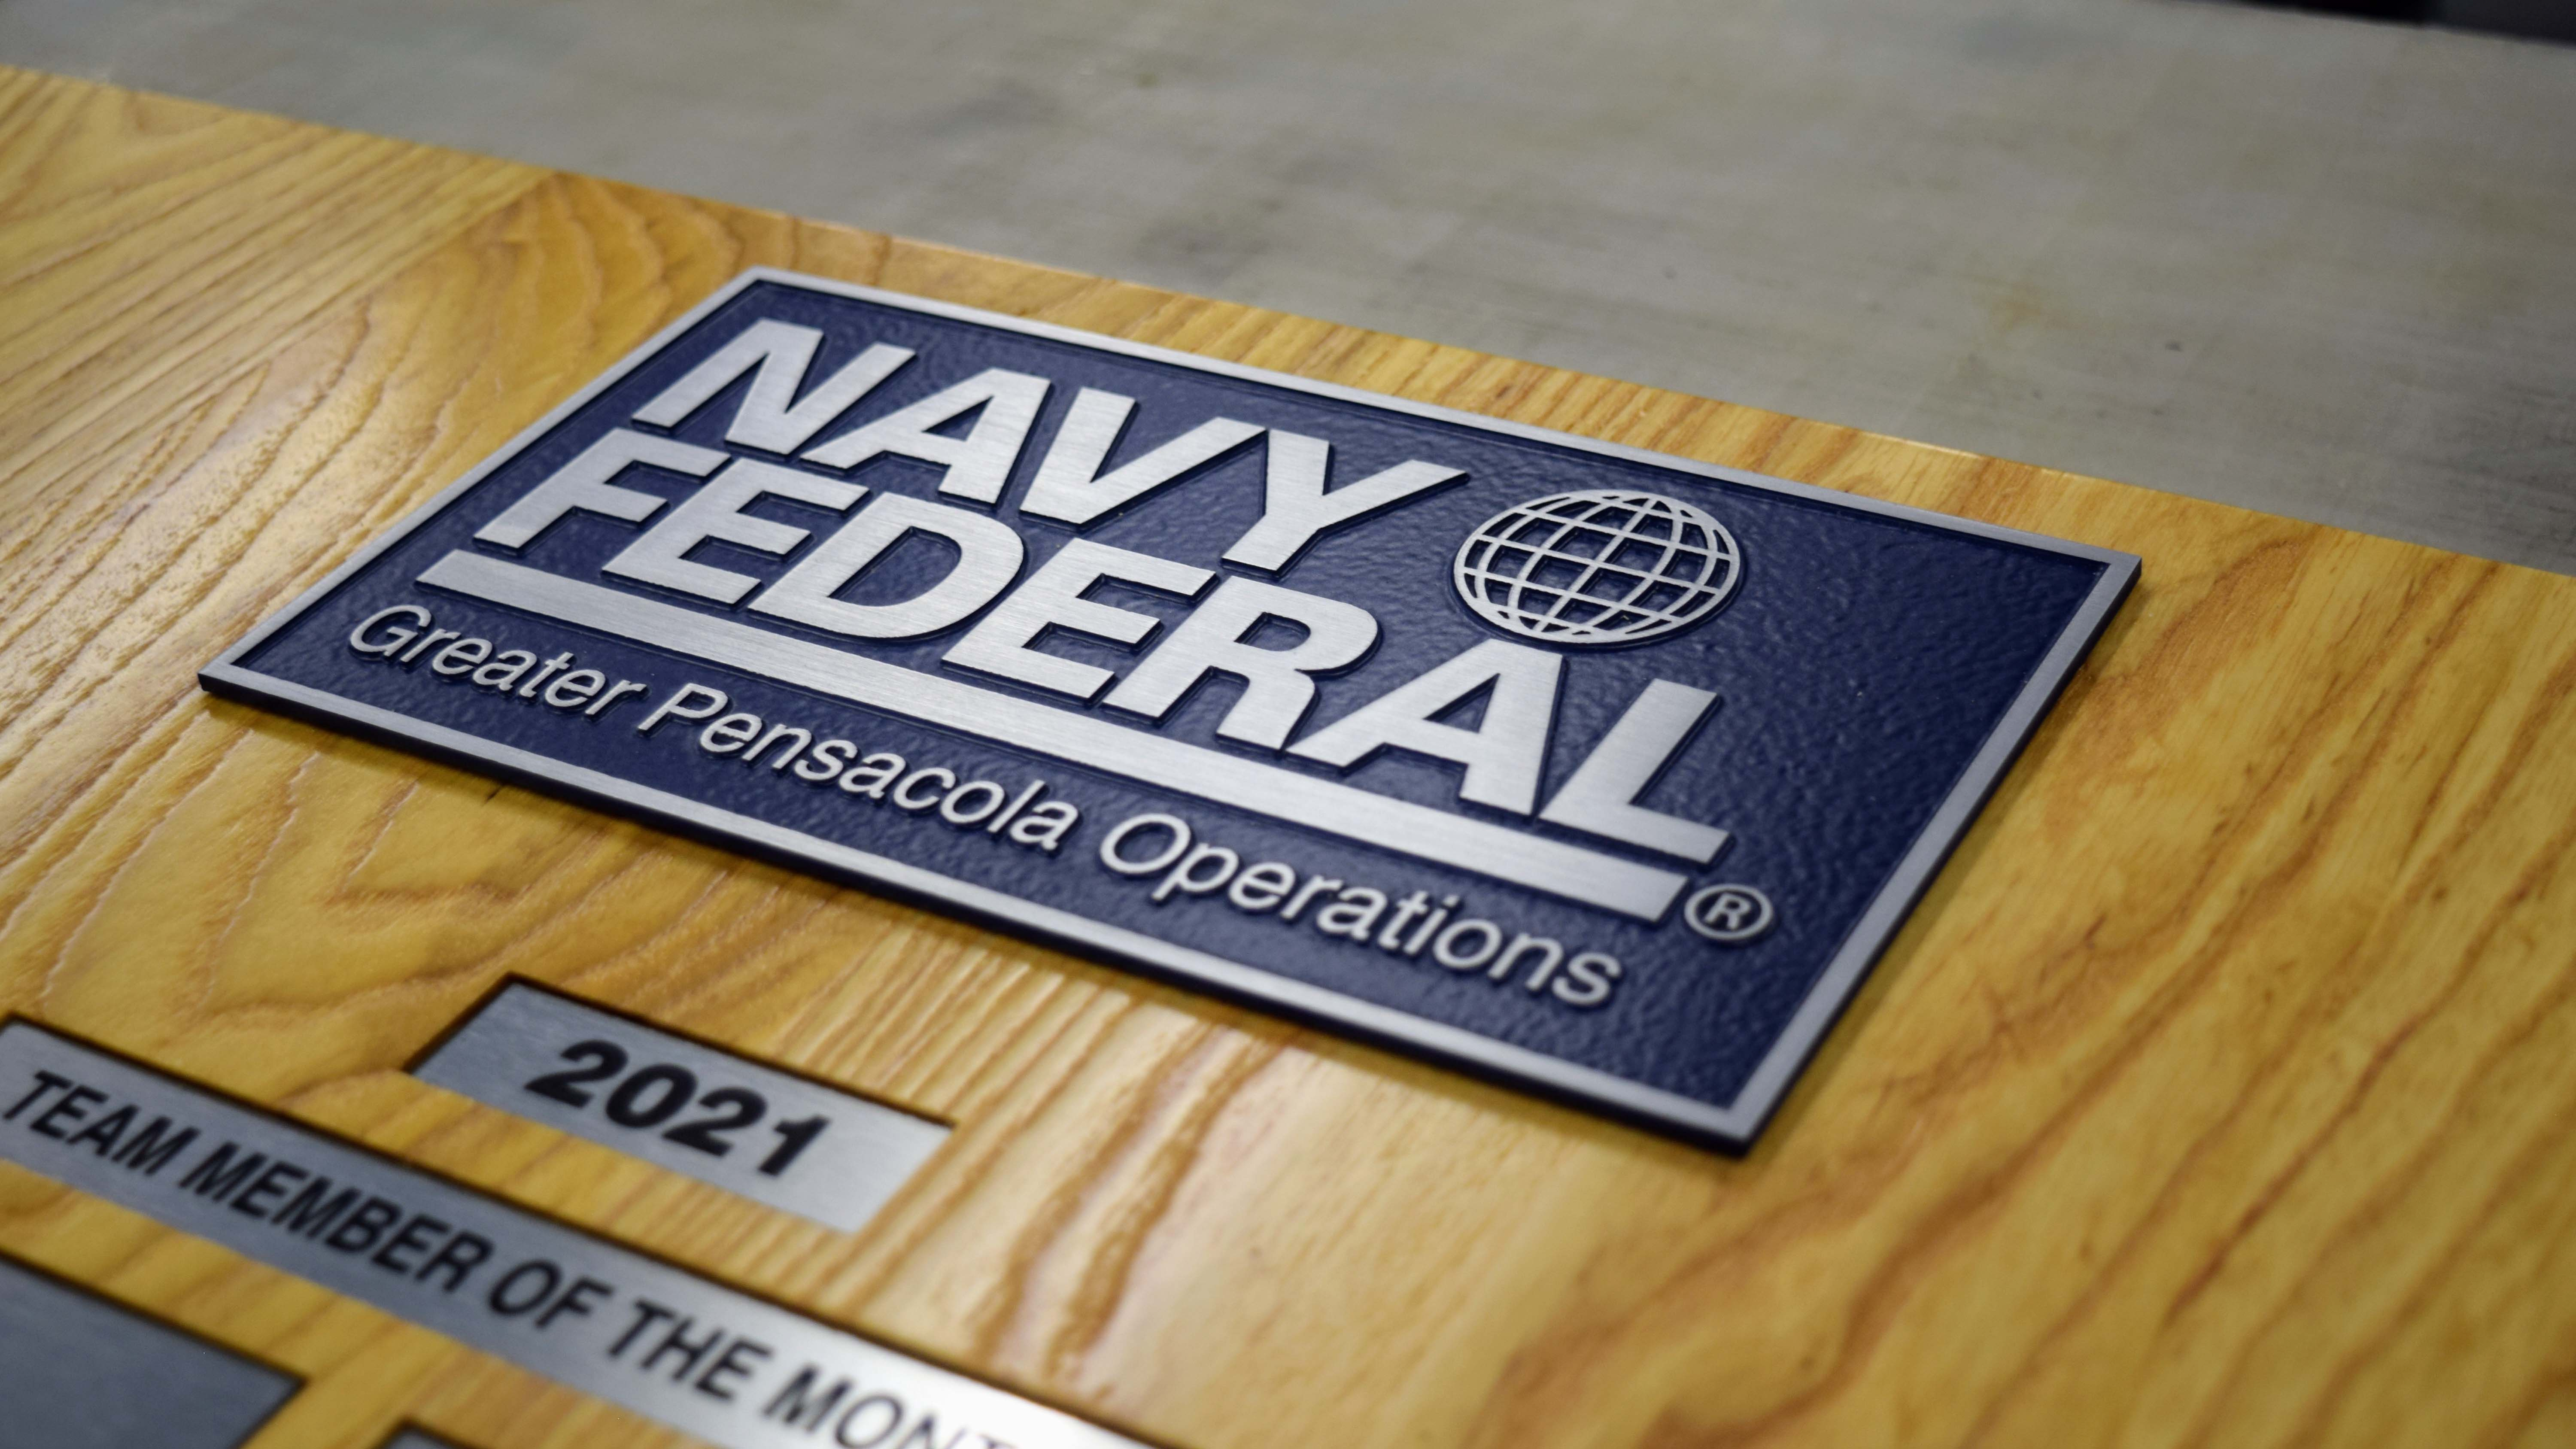 Employee recognition board for Navy Federal by signgeek